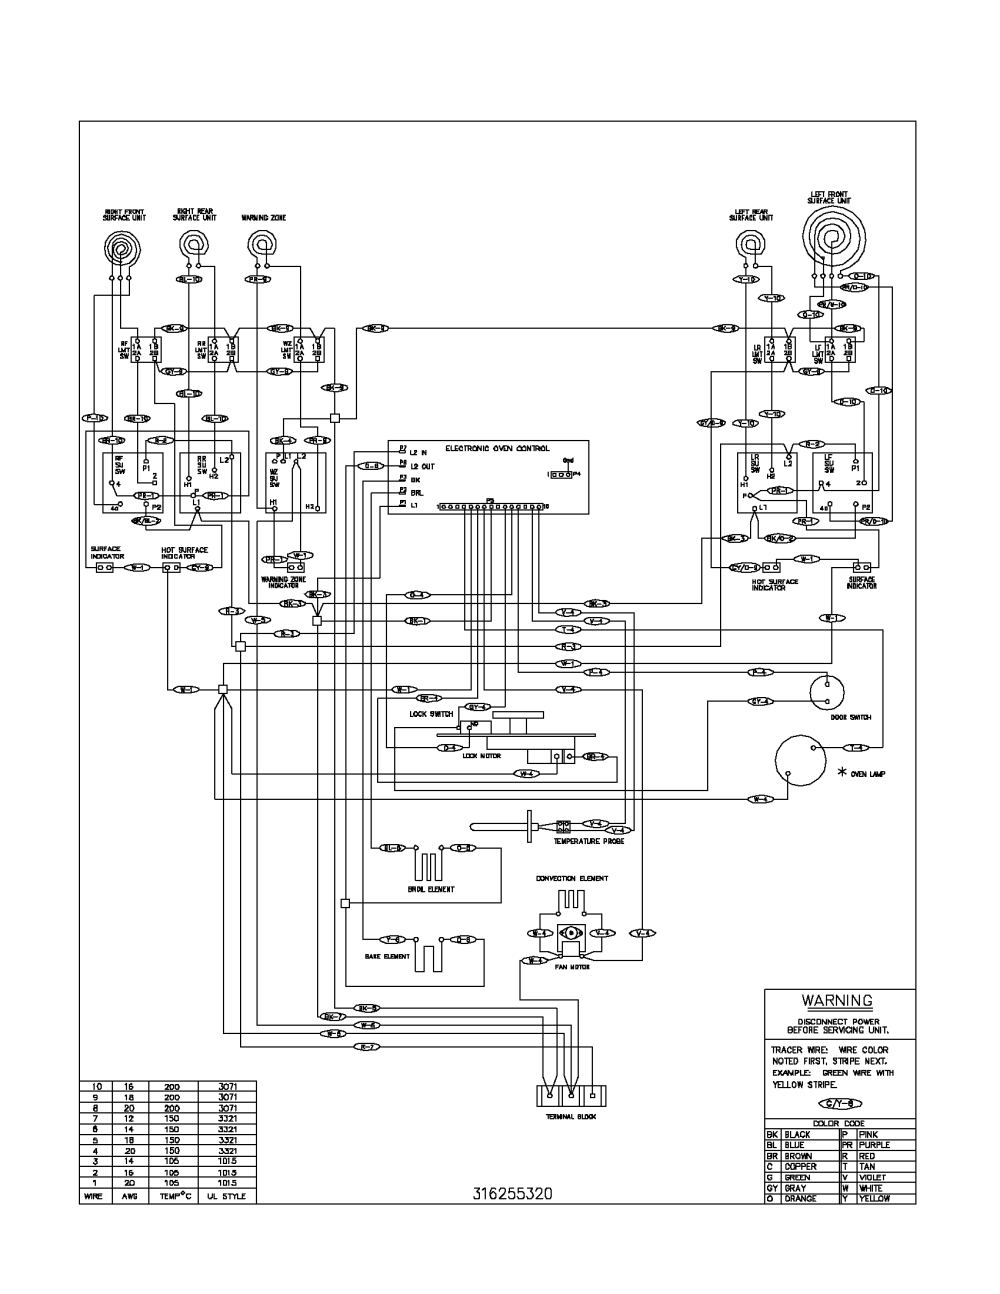 medium resolution of wiring diagram for a stove online manuual of wiring diagram electrical outlet symbols blueprints on ge stove electric range wiring